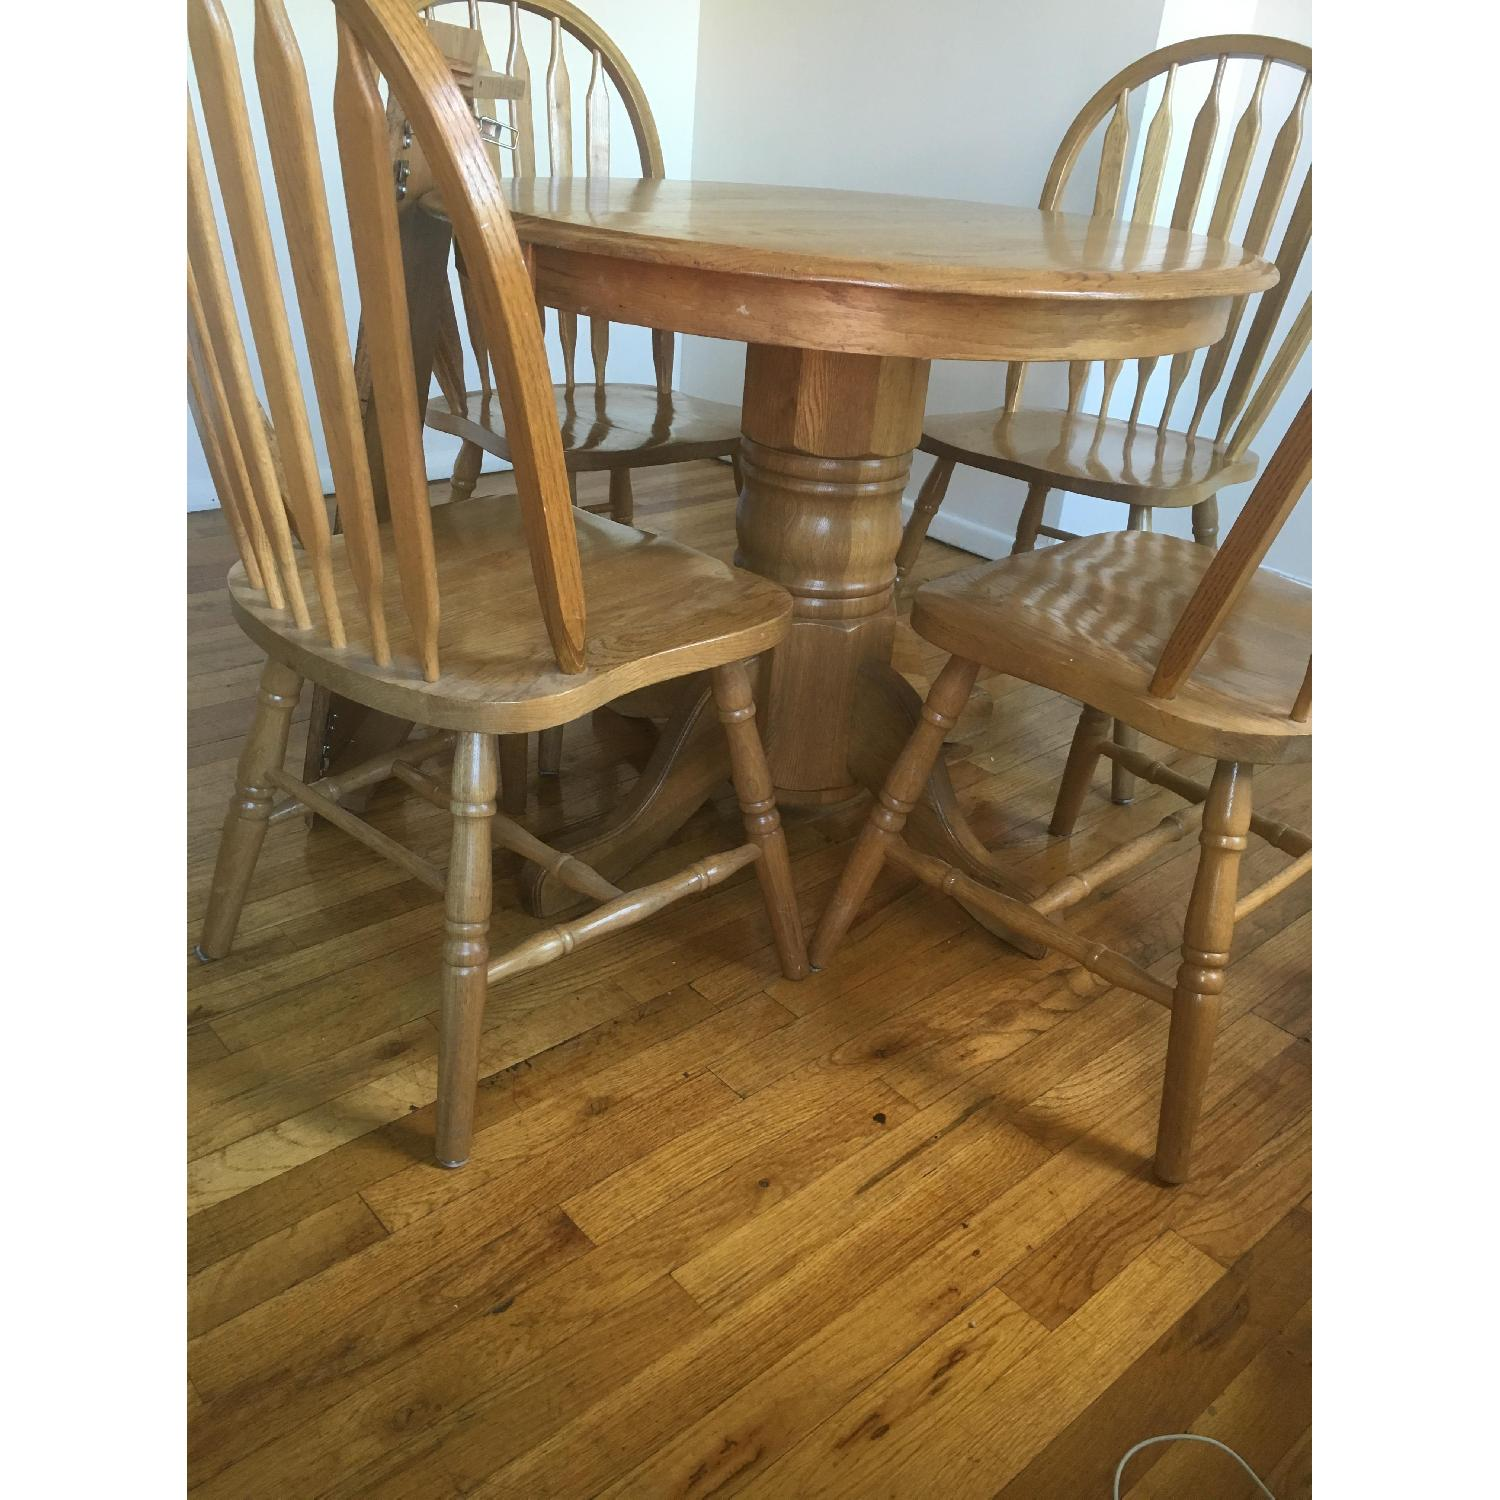 Oak Expandable Dining Table w/ 4 Chairs - image-3